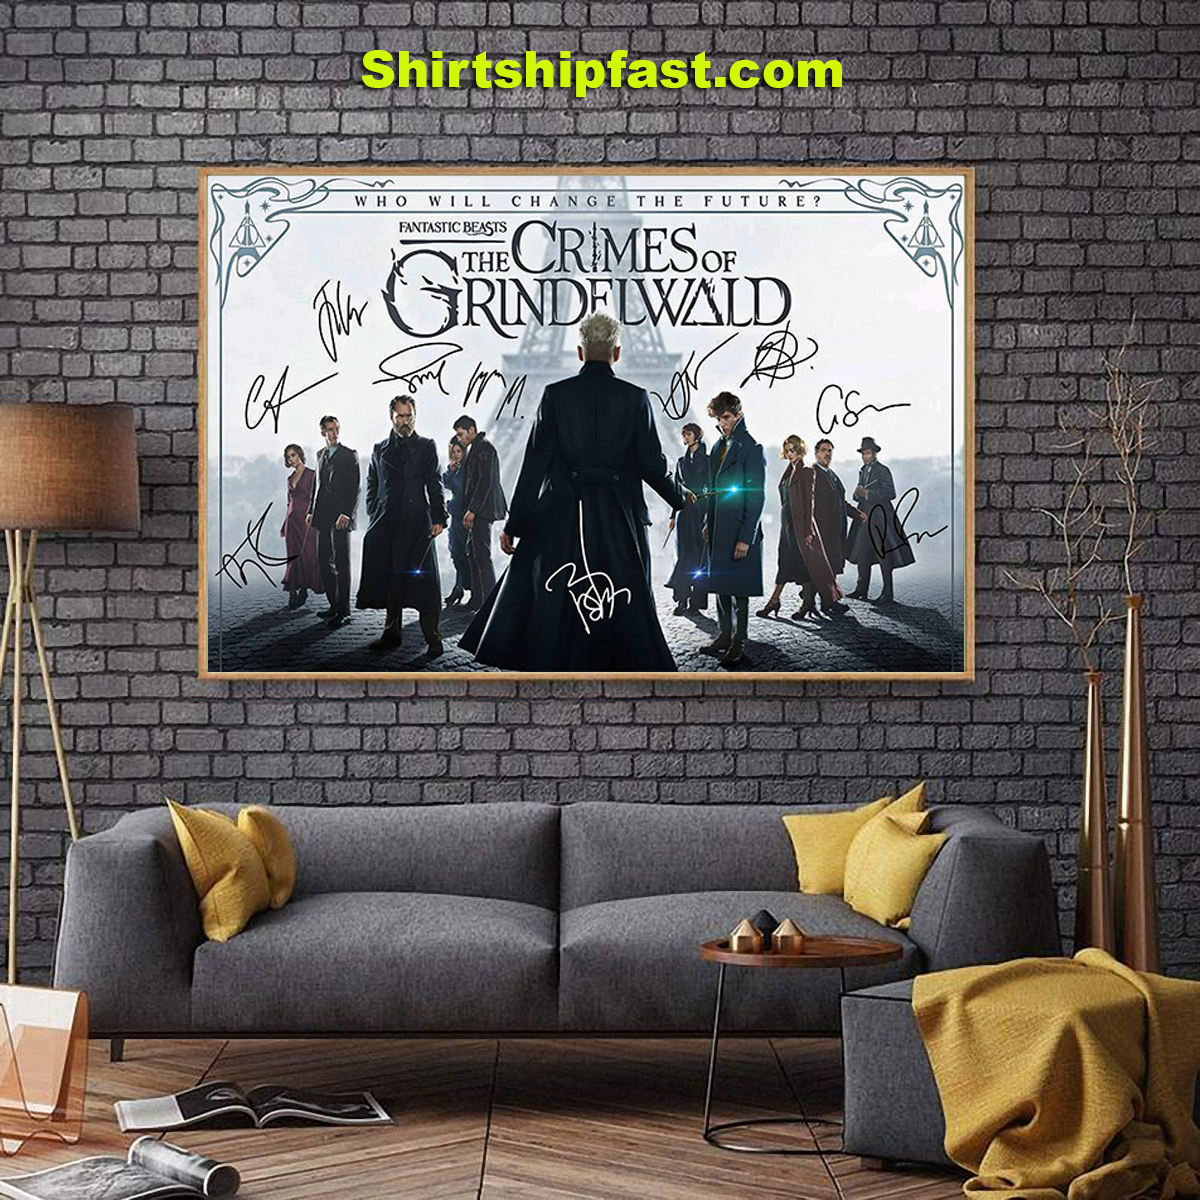 Fantatic beasts The crimes of Grindelwald signature poster - Picture 2